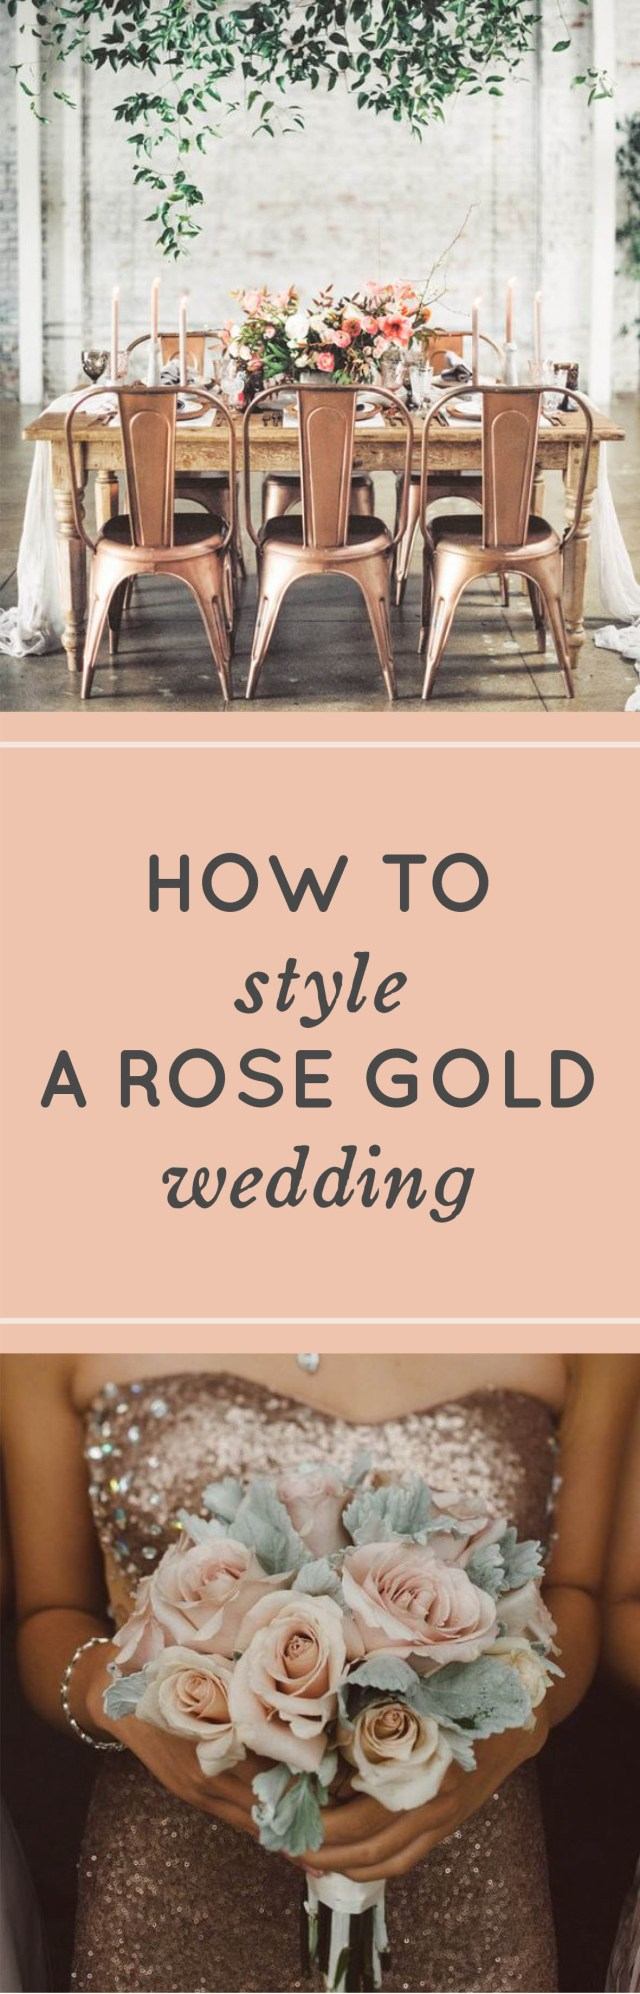 Rose Gold Wedding Decorations Rose Gold Wedding Ideas How To Style A Rose Gold Wedding